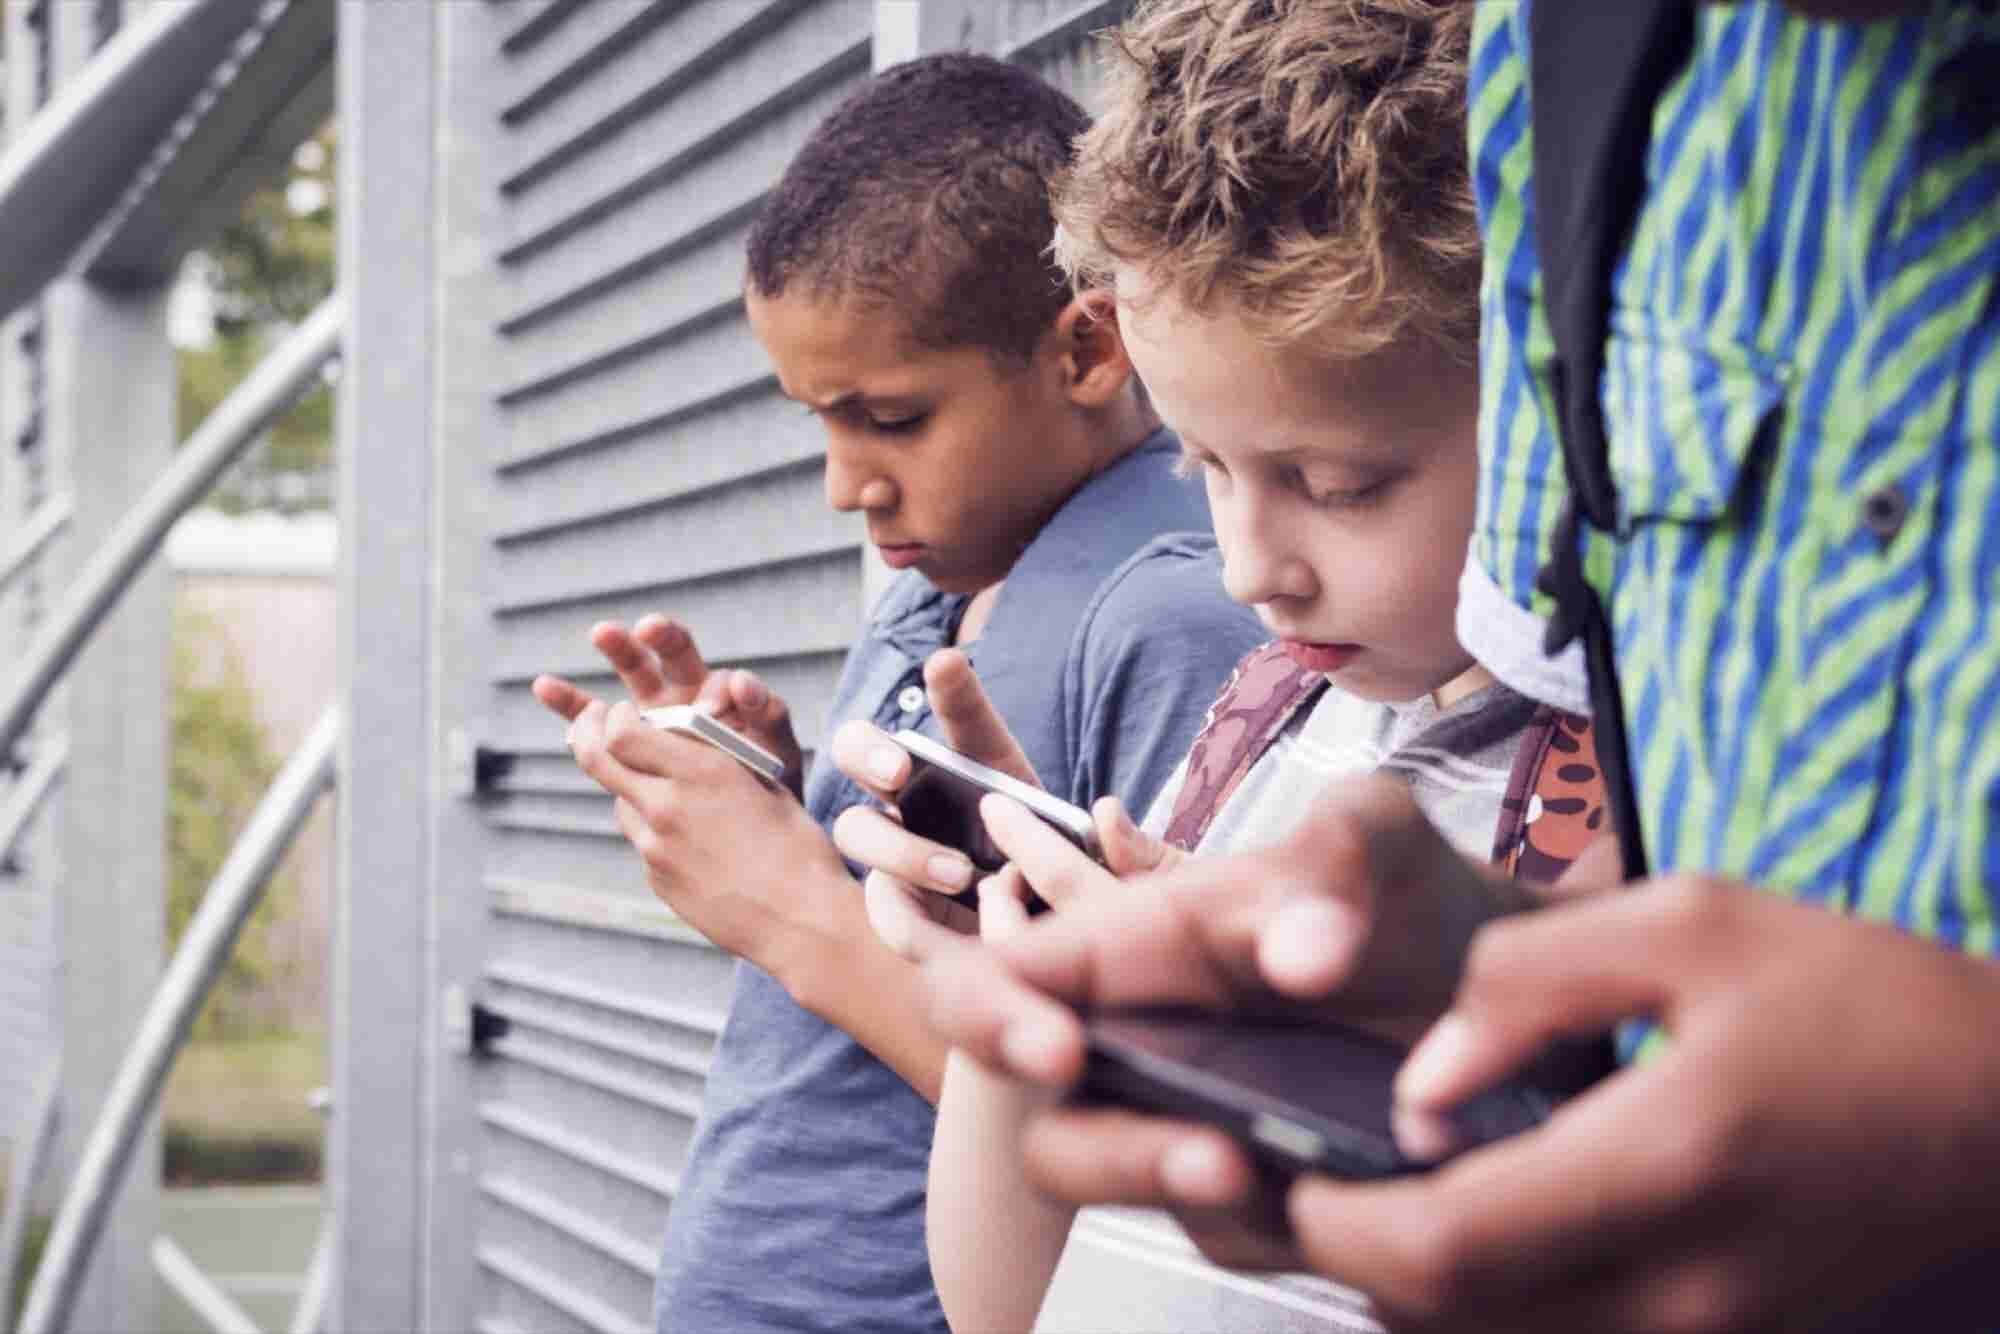 Does Your Kid Have Trouble Sleeping? Confiscate That Phone.